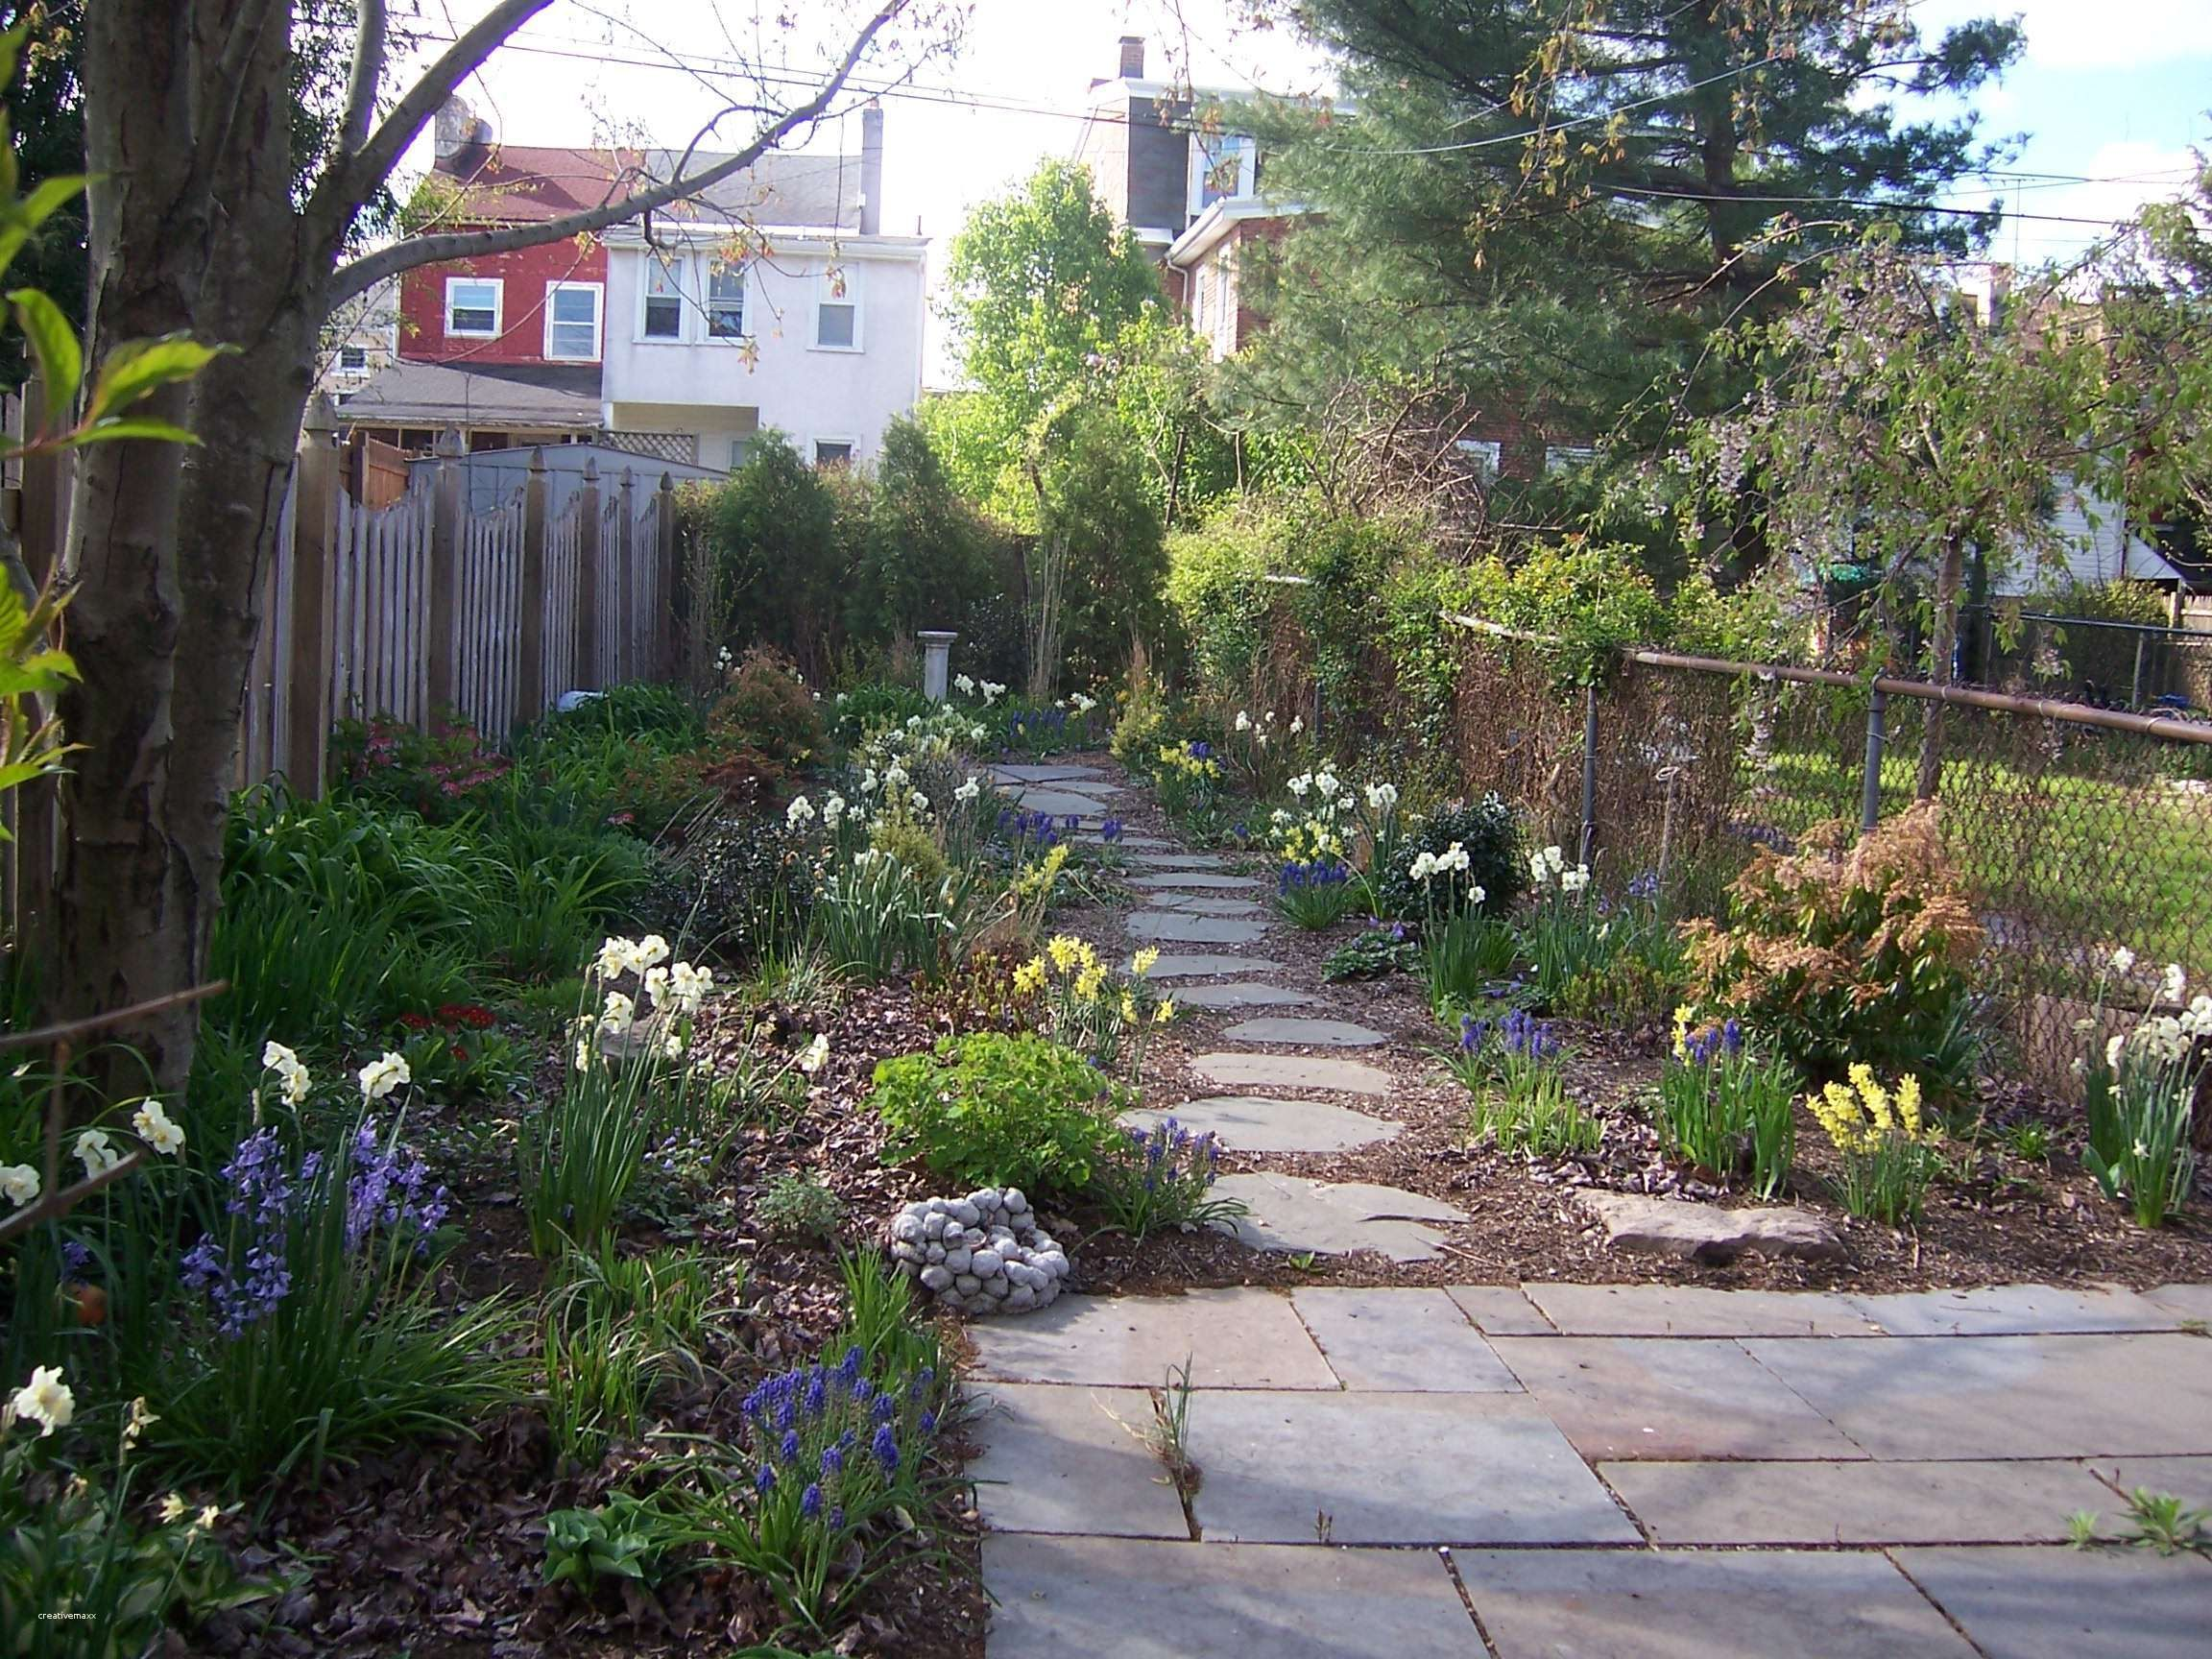 Small Garden Design Without Grass Awesome Small Garden Design Without Grass Large Backyard Landscaping Small Backyard Landscaping Easy Backyard Landscaping Small backyard small garden ideas without grass